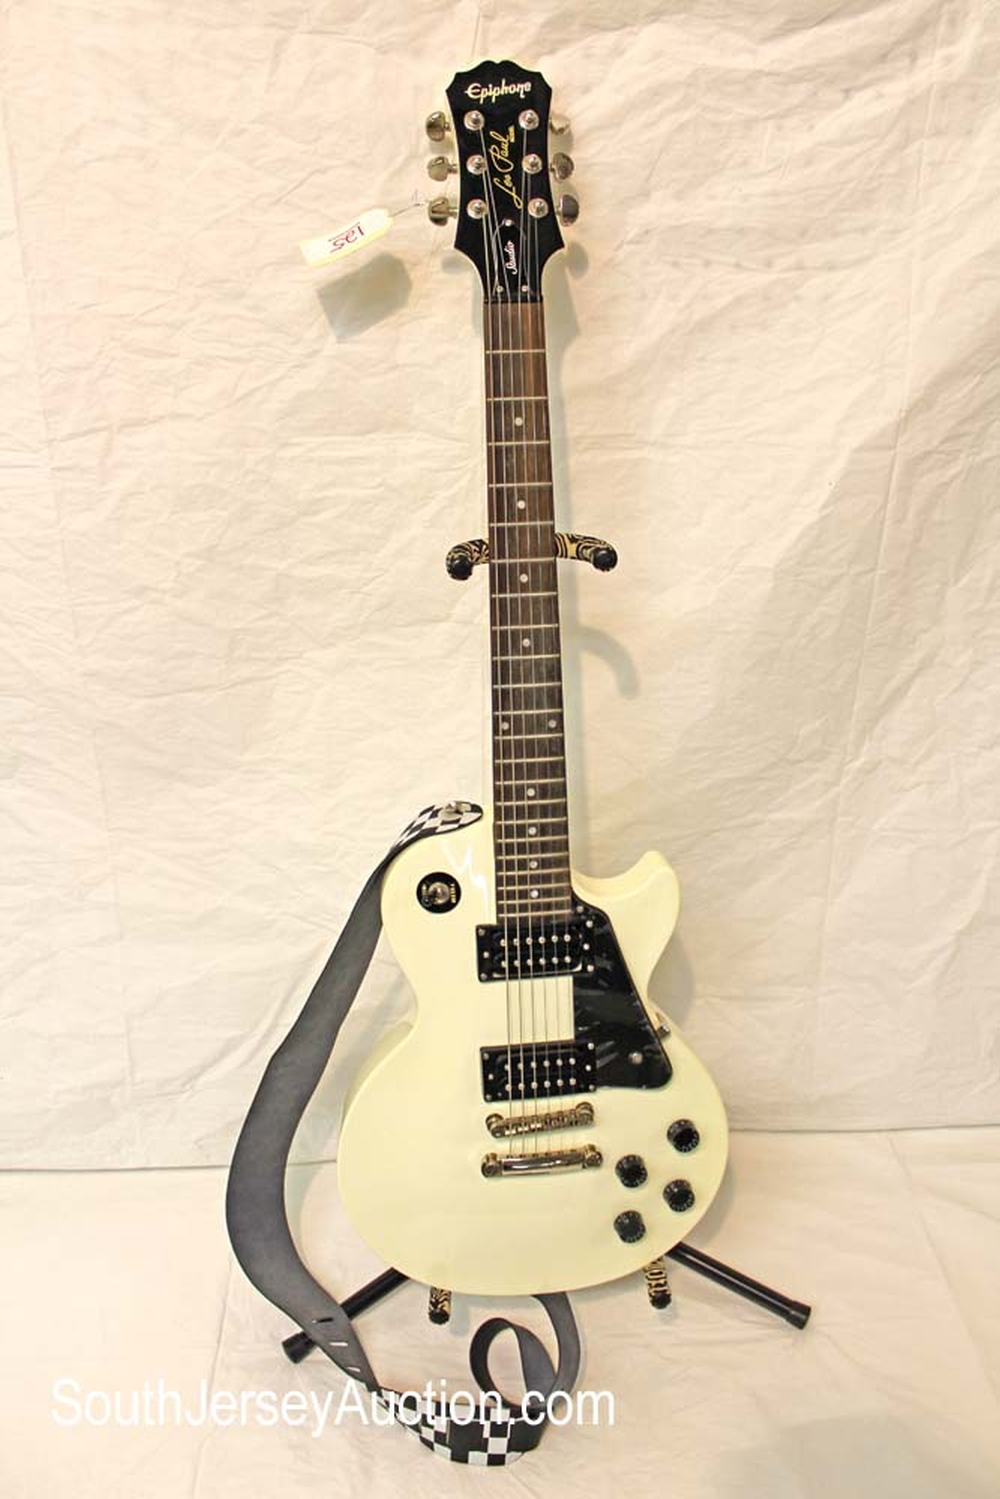 2011 Les Paul Epiphone Limited Edition Studio Custom Shop guitar, in the white color, still has plastic on pick guard, s/n #311496785, 2nd grover tuners and strap, excellent shape